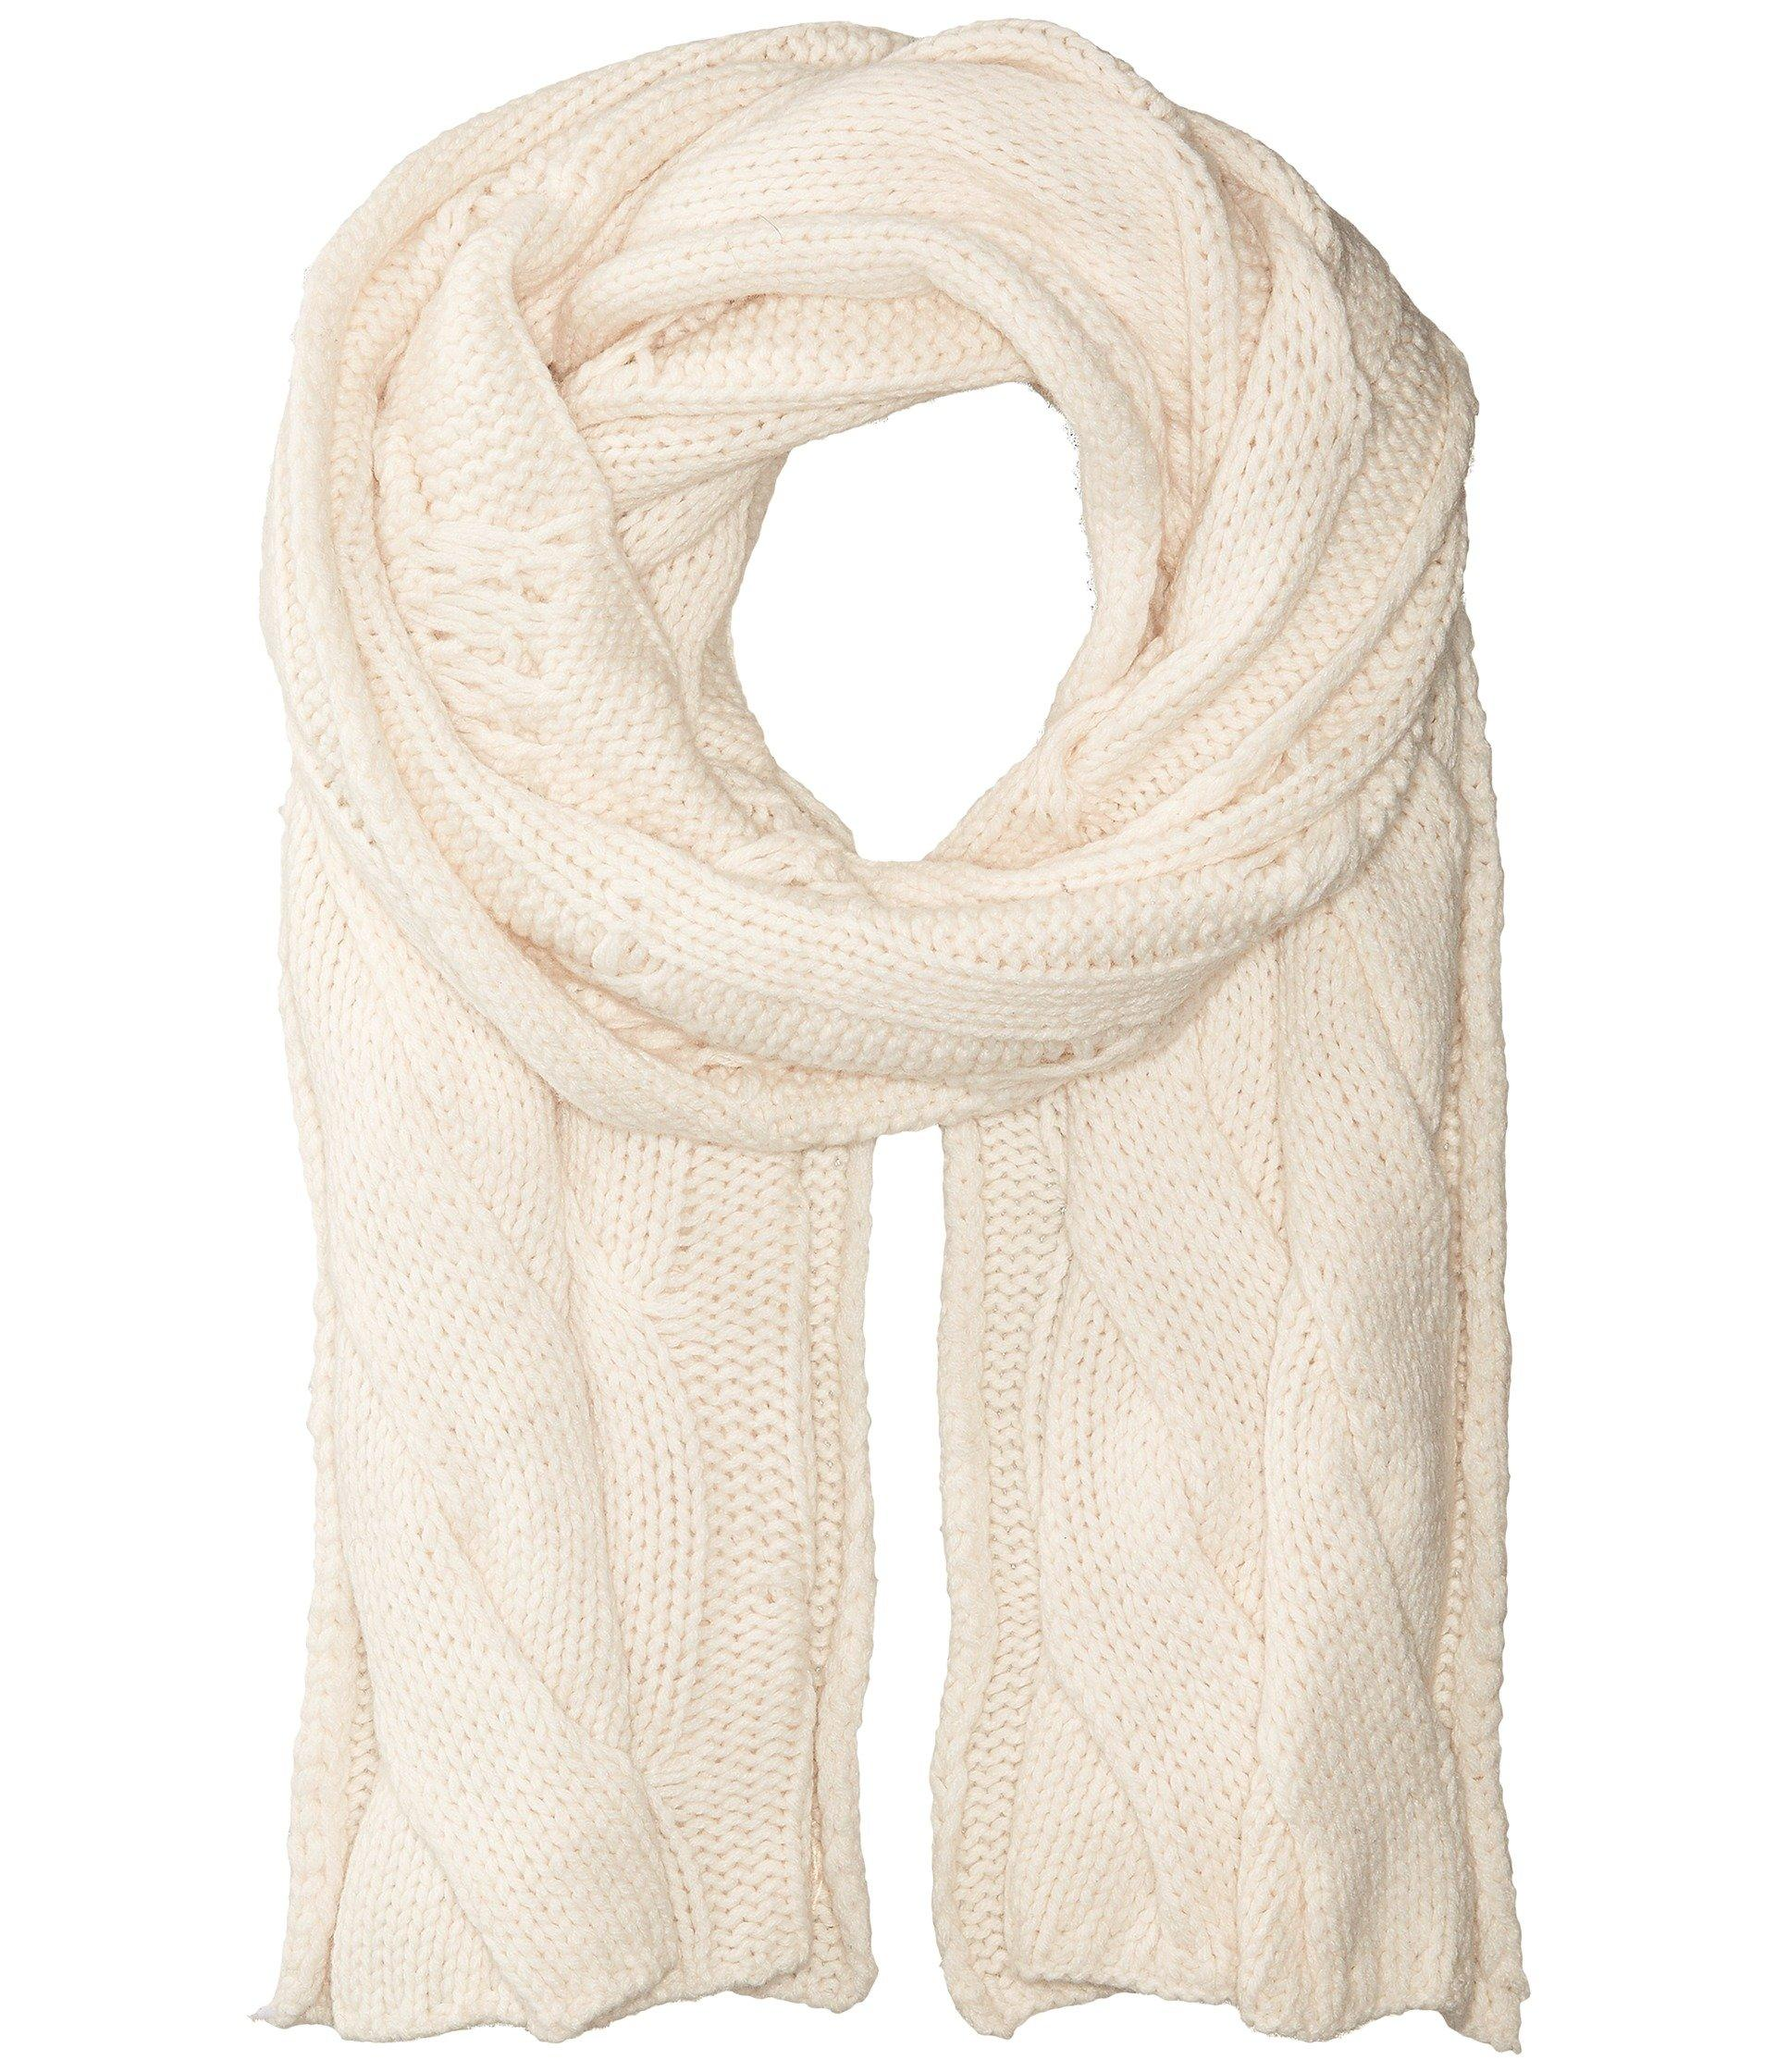 6f1bda4ee29 Keep an elegant twist to your favorite looks with this Polo Ralph Lauren®  Exploded Rope Cable Scarf. Oblong scarf with cable-knit pattern.